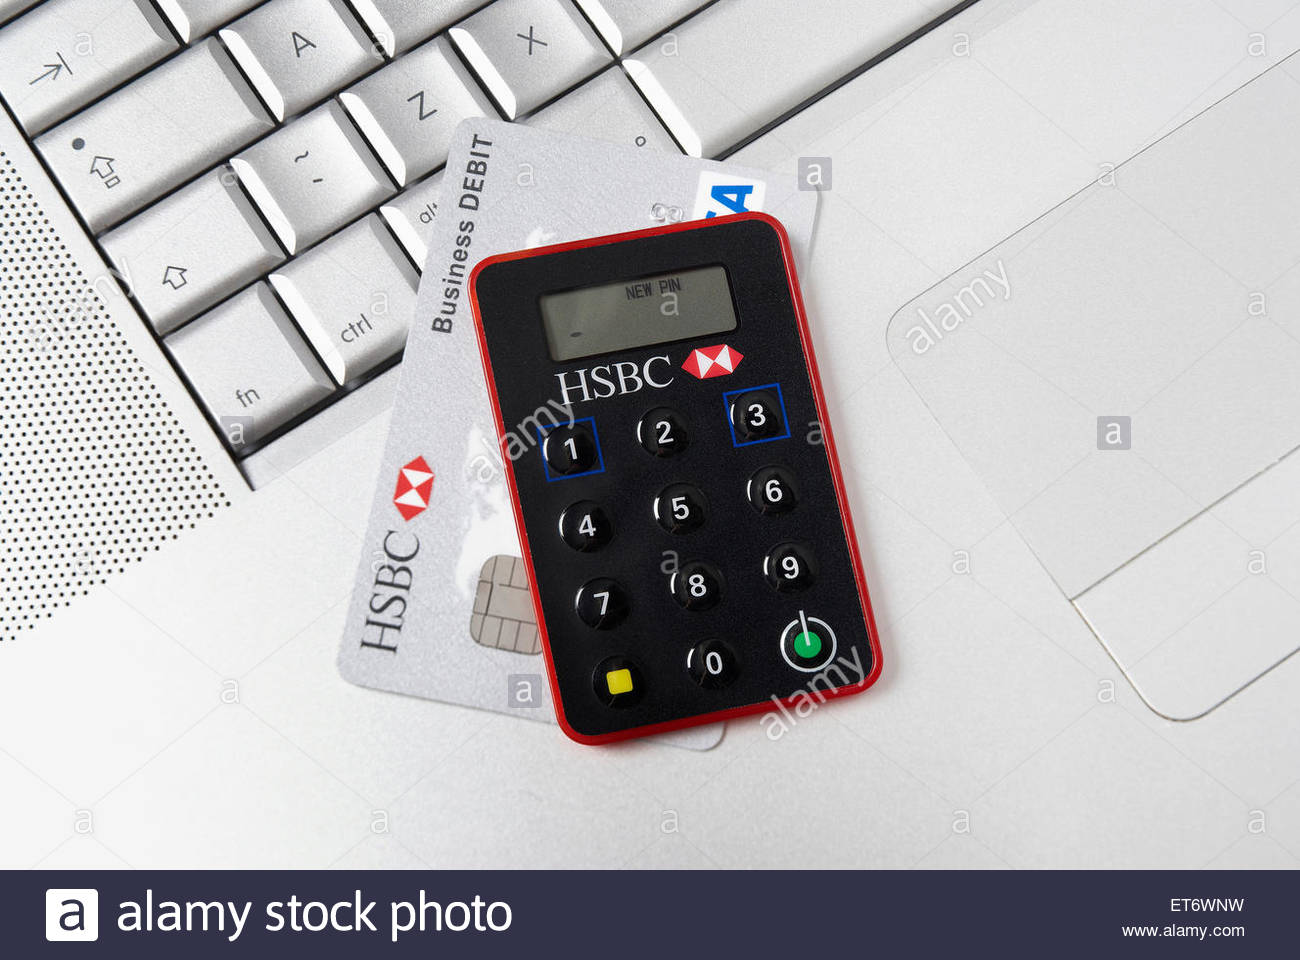 Internet Banking Fraud Stock Photos & Internet Banking Fraud Stock